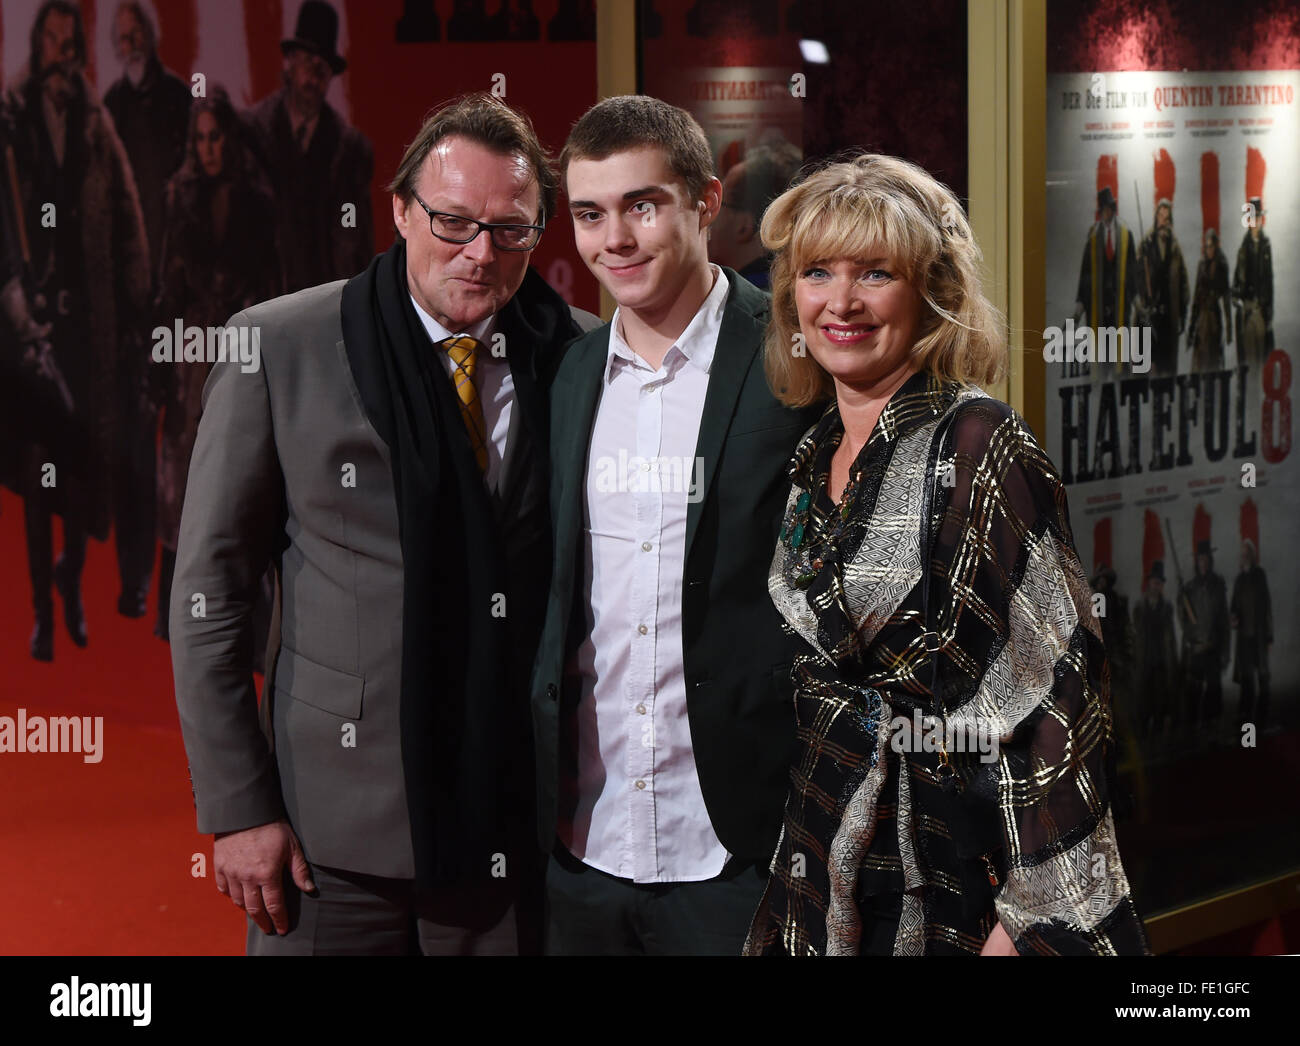 Designer Nanna Kuckuck(R), her husband Dirk Ullmann (L) and her son Mel arrive to the German premiere of the - Stock Image